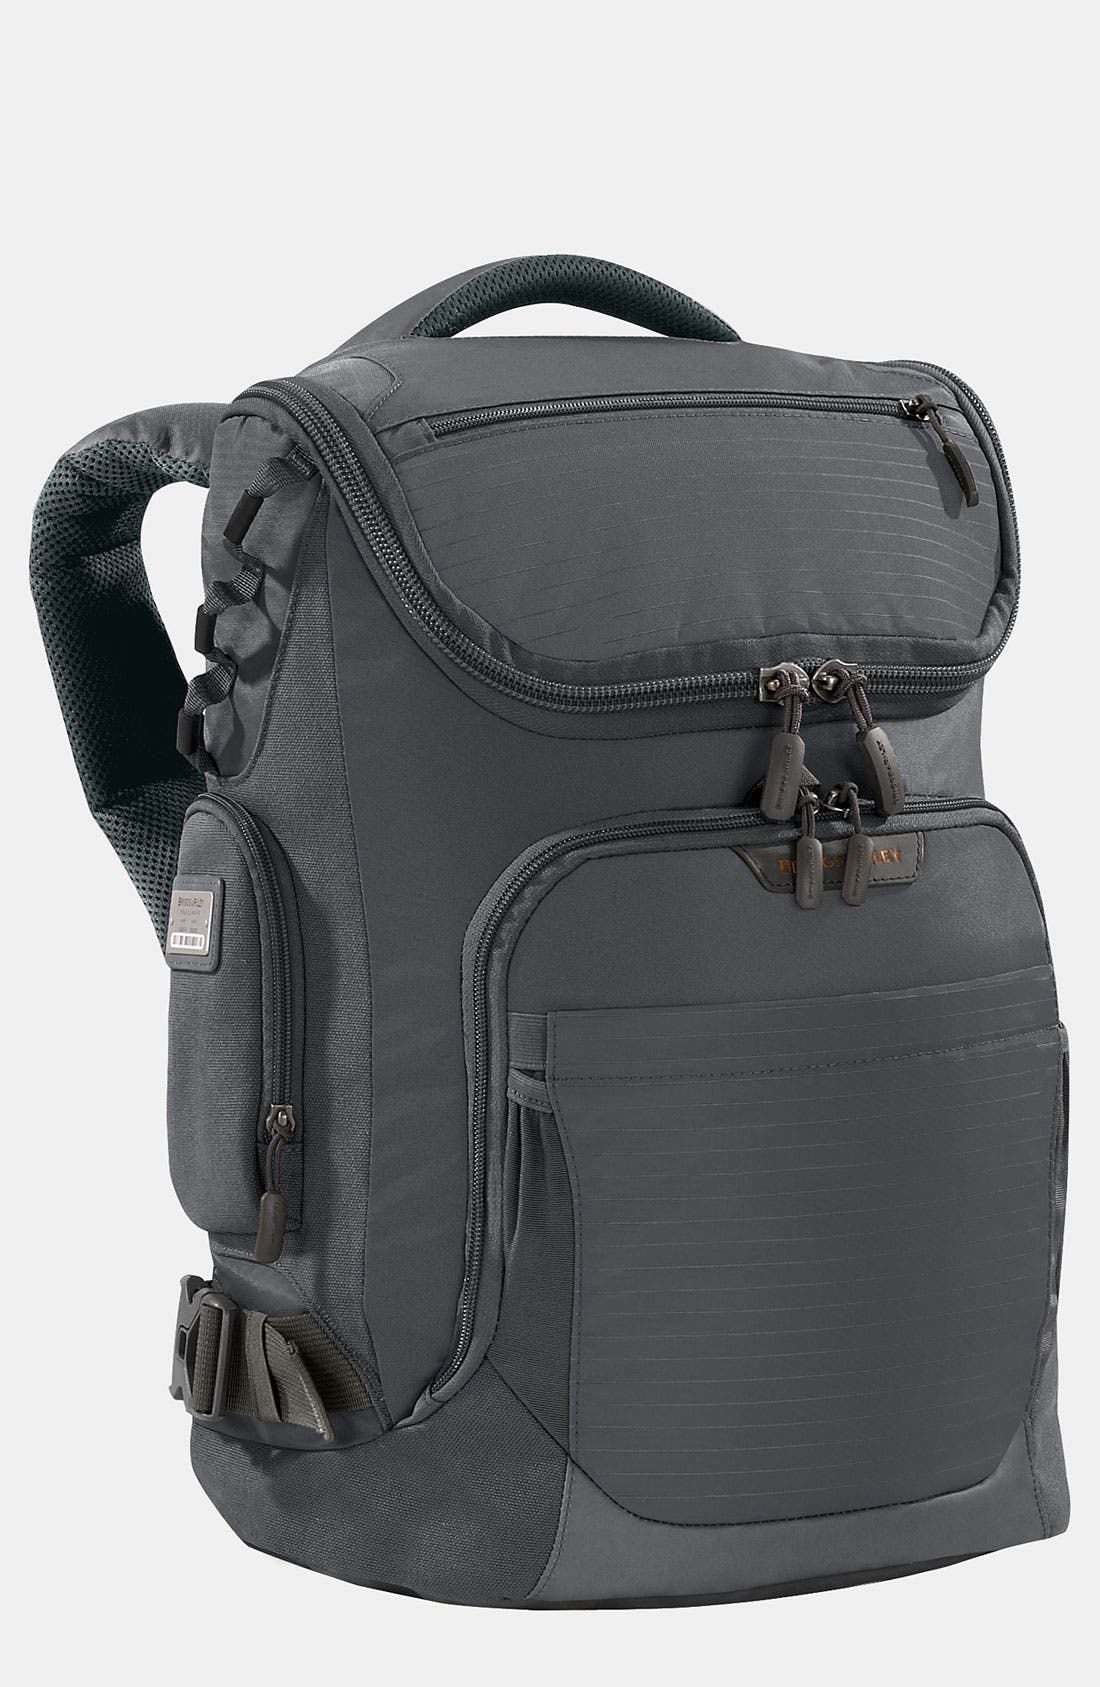 Alternate Image 1 Selected - Briggs & Riley 'Excursion' Backpack